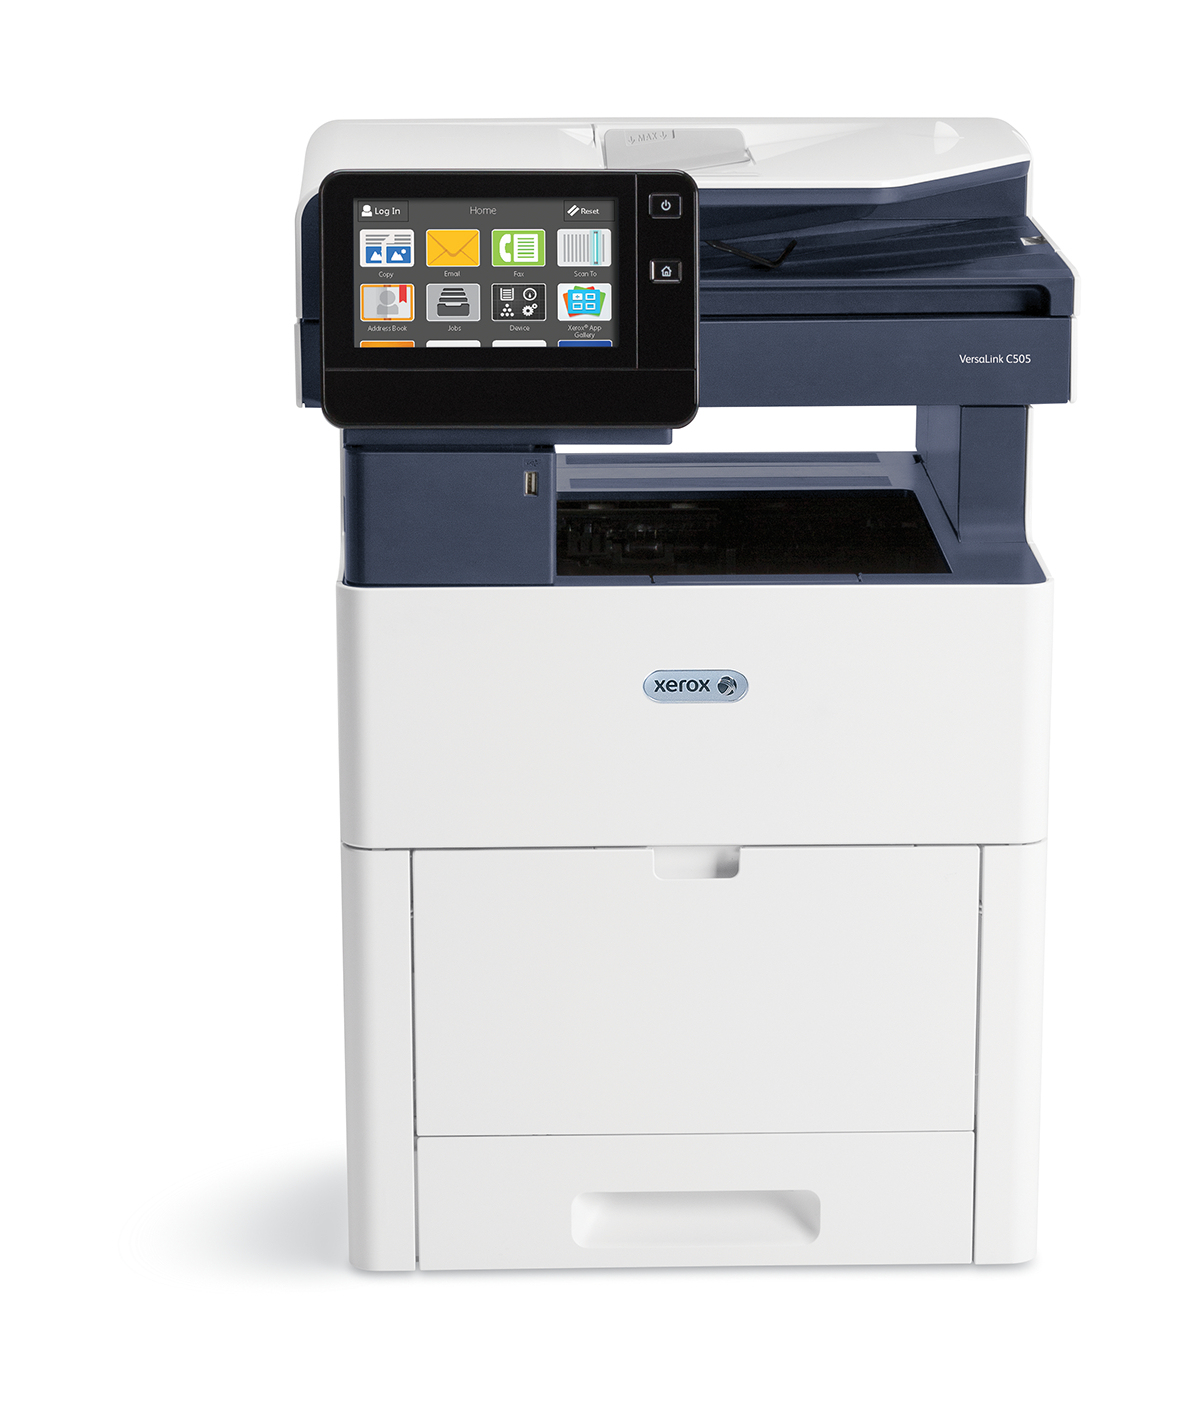 Xerox VersaLink C505 A4 45Ppm Duplex Copy/Print/Scan Metered Ps3 Pcl5E/6 2 Trays 700 Sheets (Does Not Support Finisher)